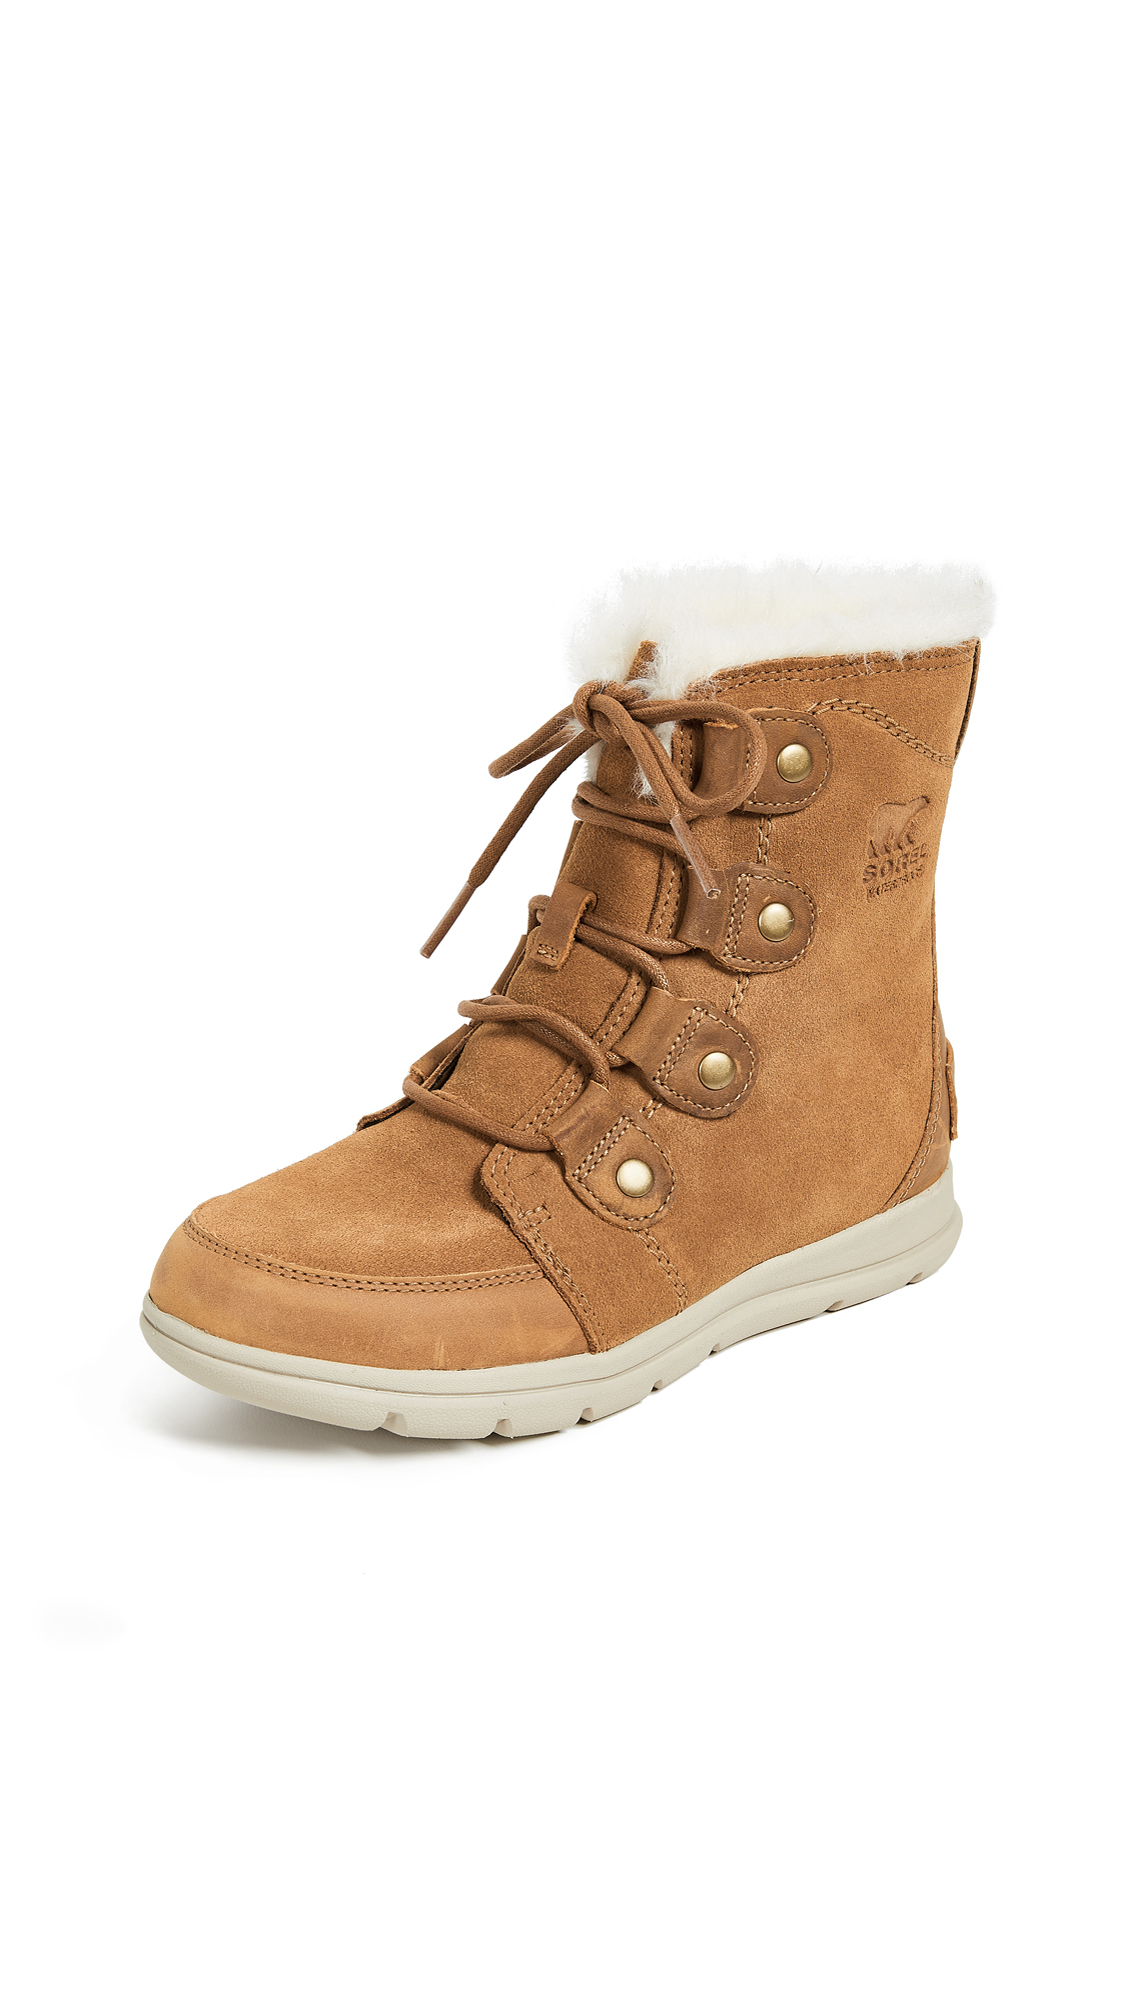 Explorer Joan Faux Fur-Trimmed Waterproof Suede And Leather Ankle Boots in Camel Brown